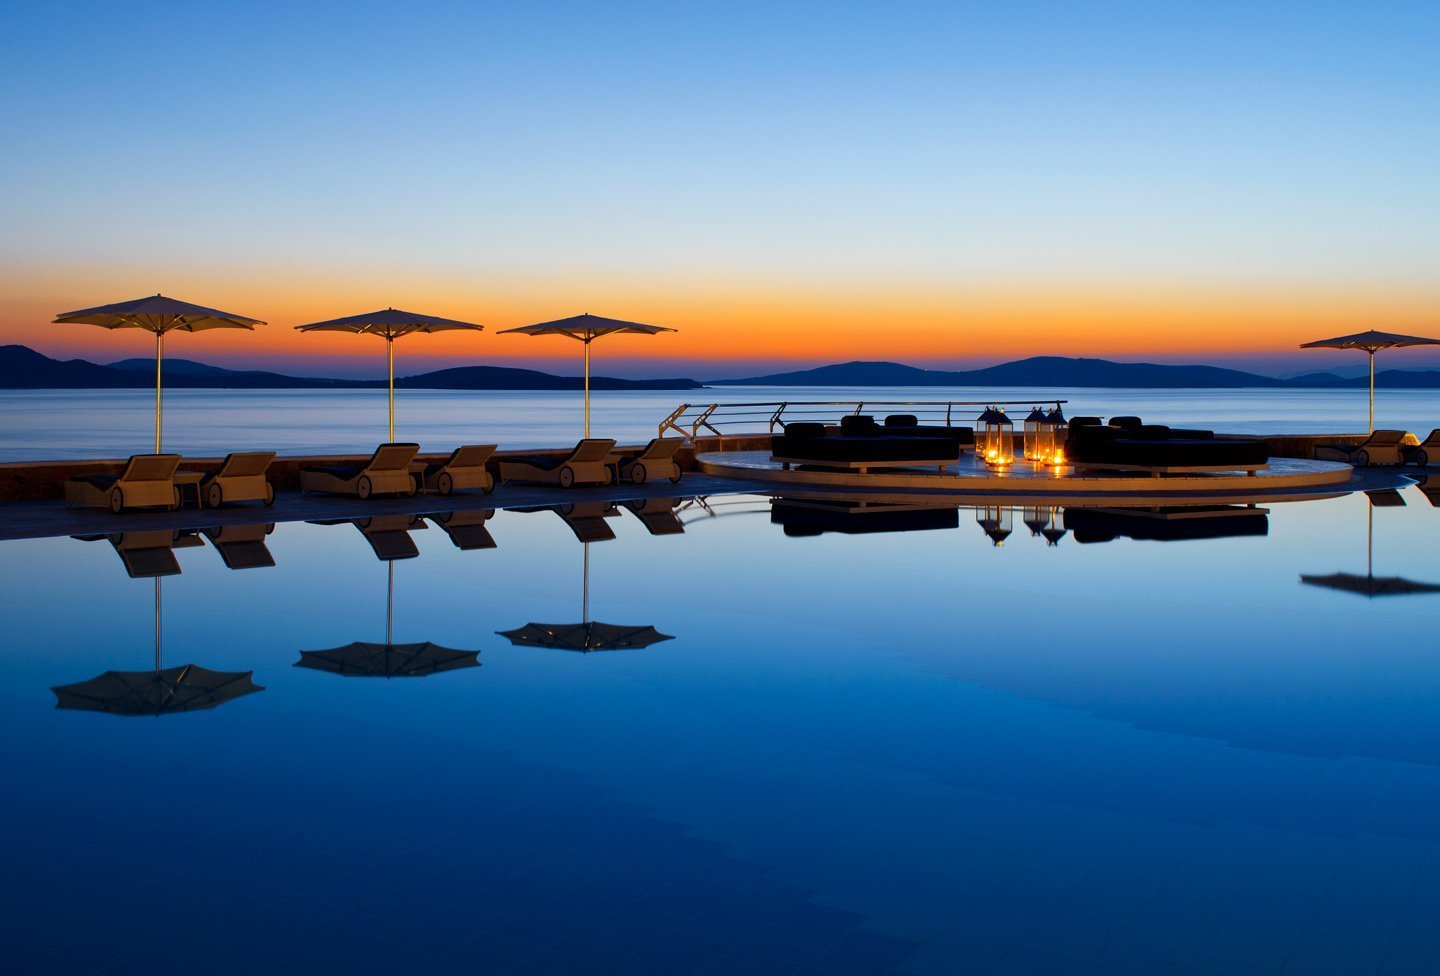 Sunbeds by the crystal clear swimming pool overlooking the Aegean sea at sunset.